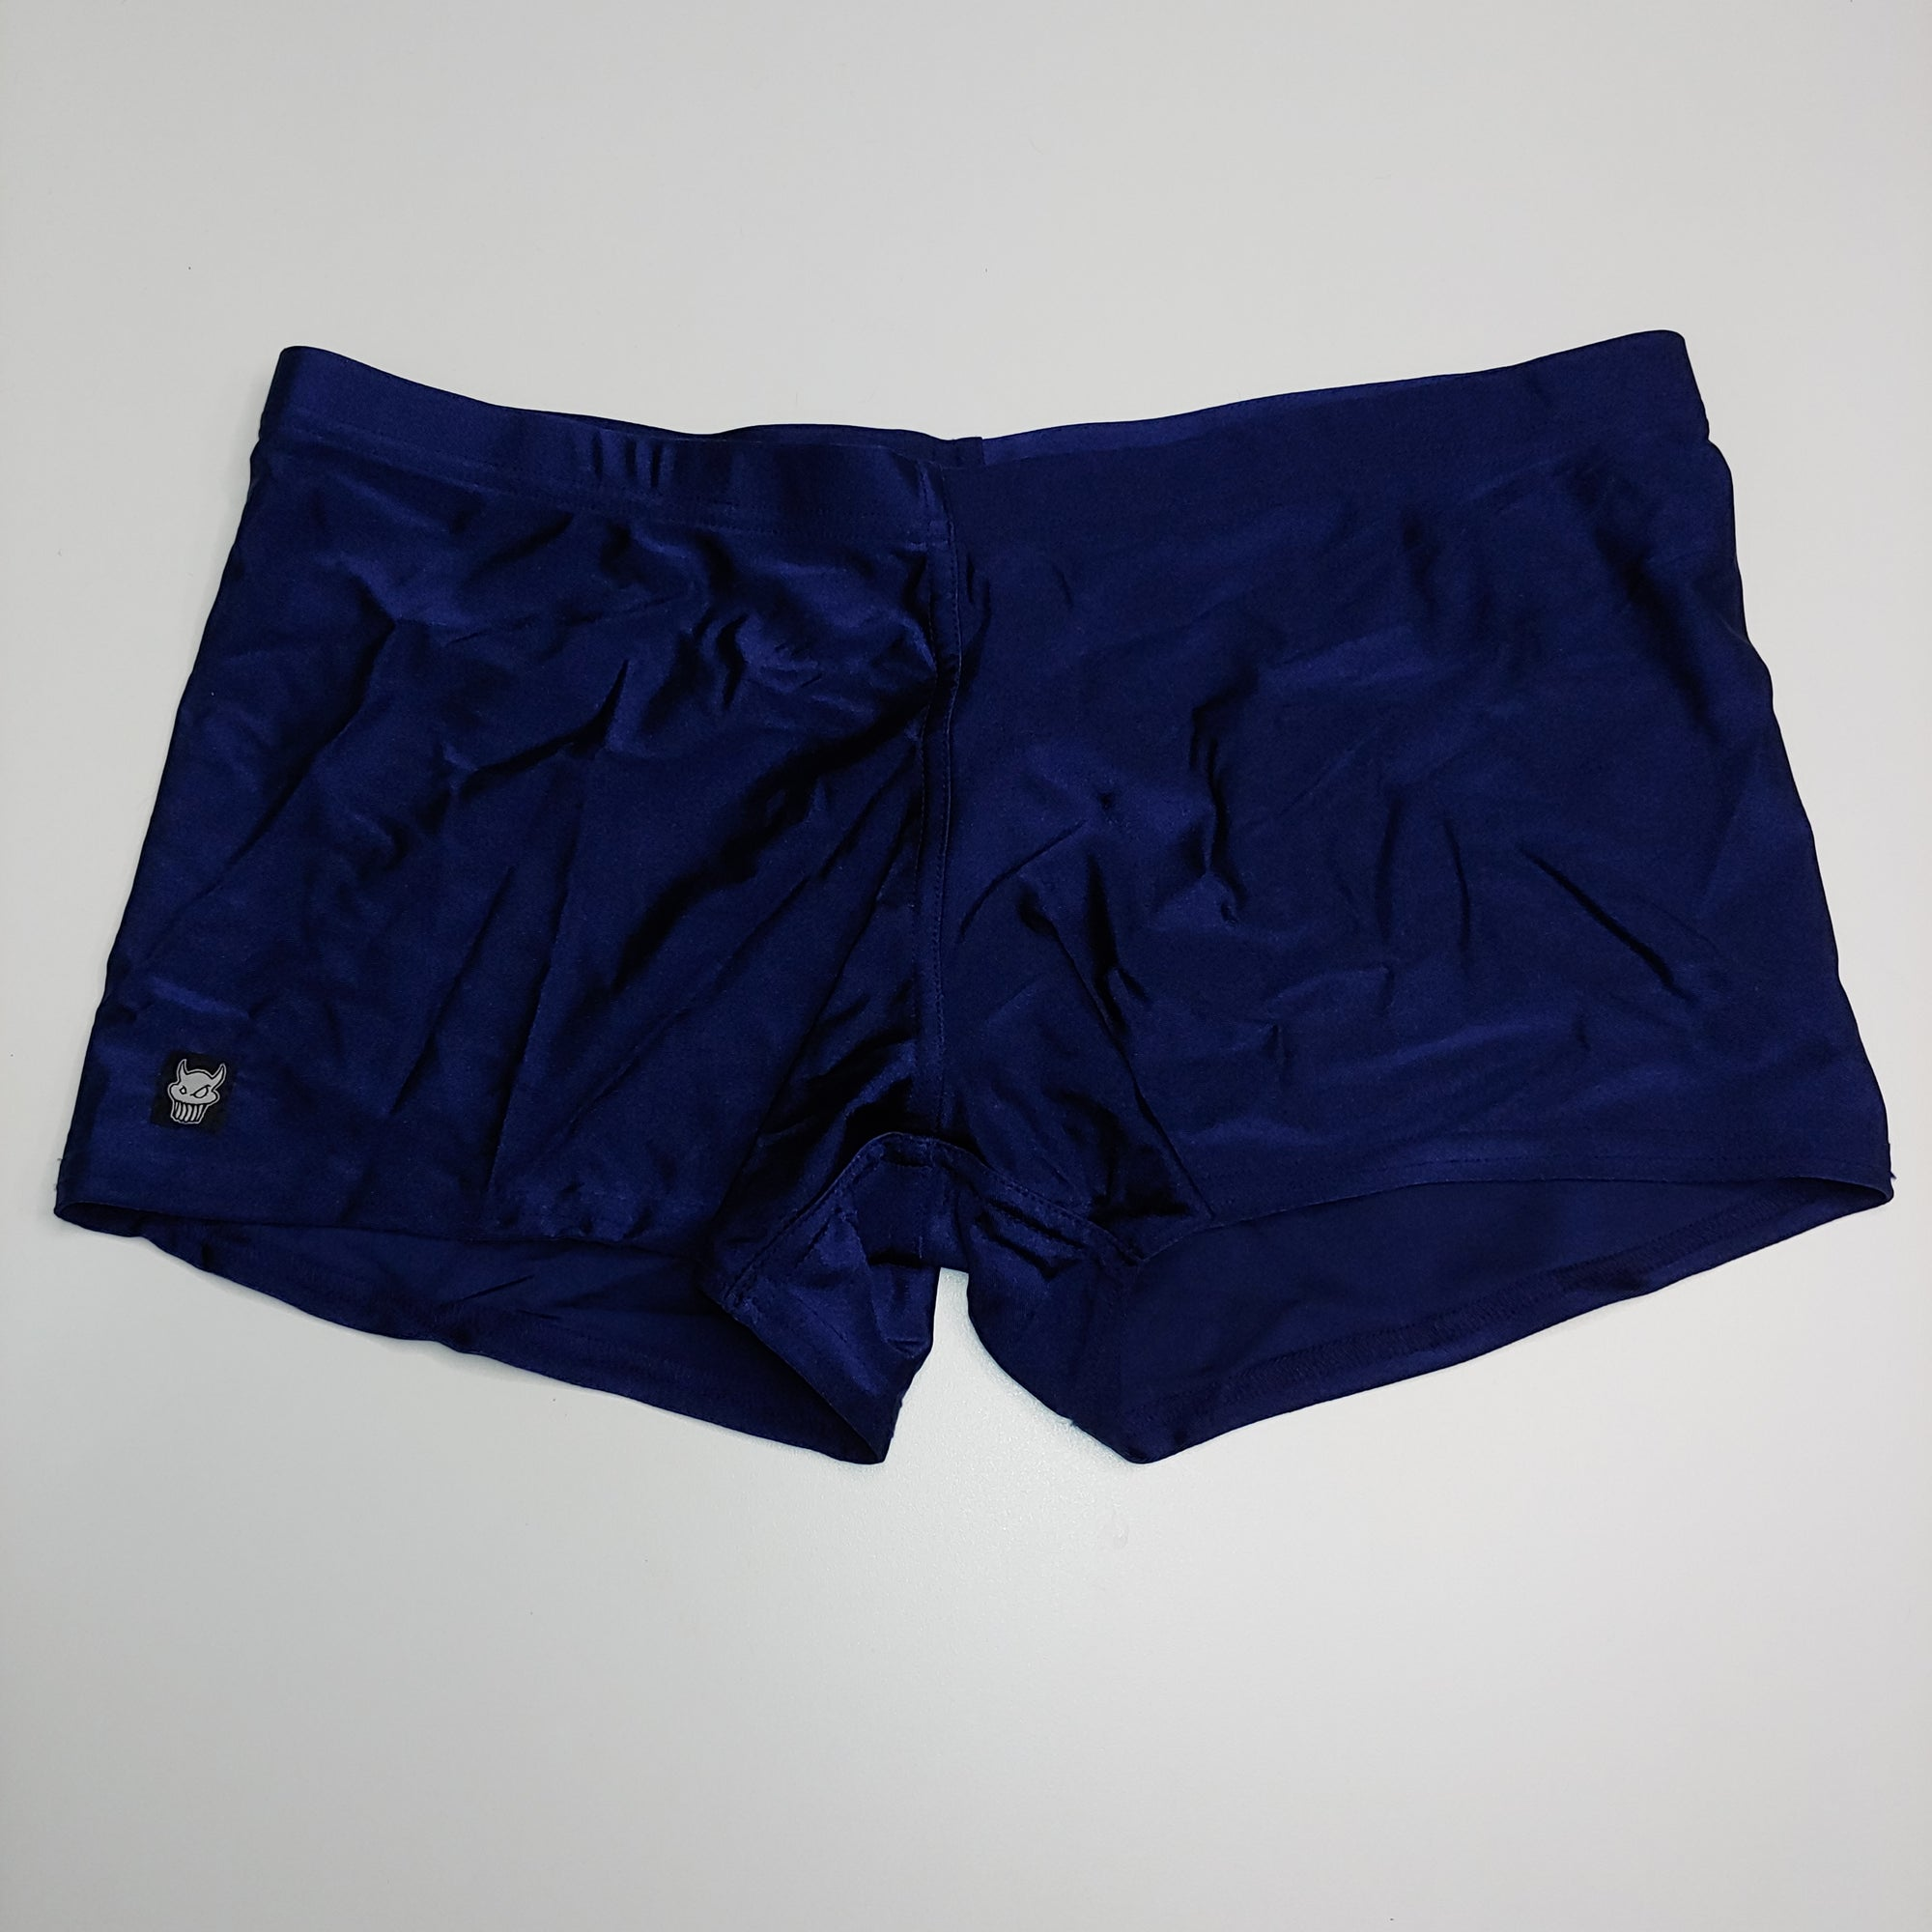 L-Solid Navy Blue Booty Shorts